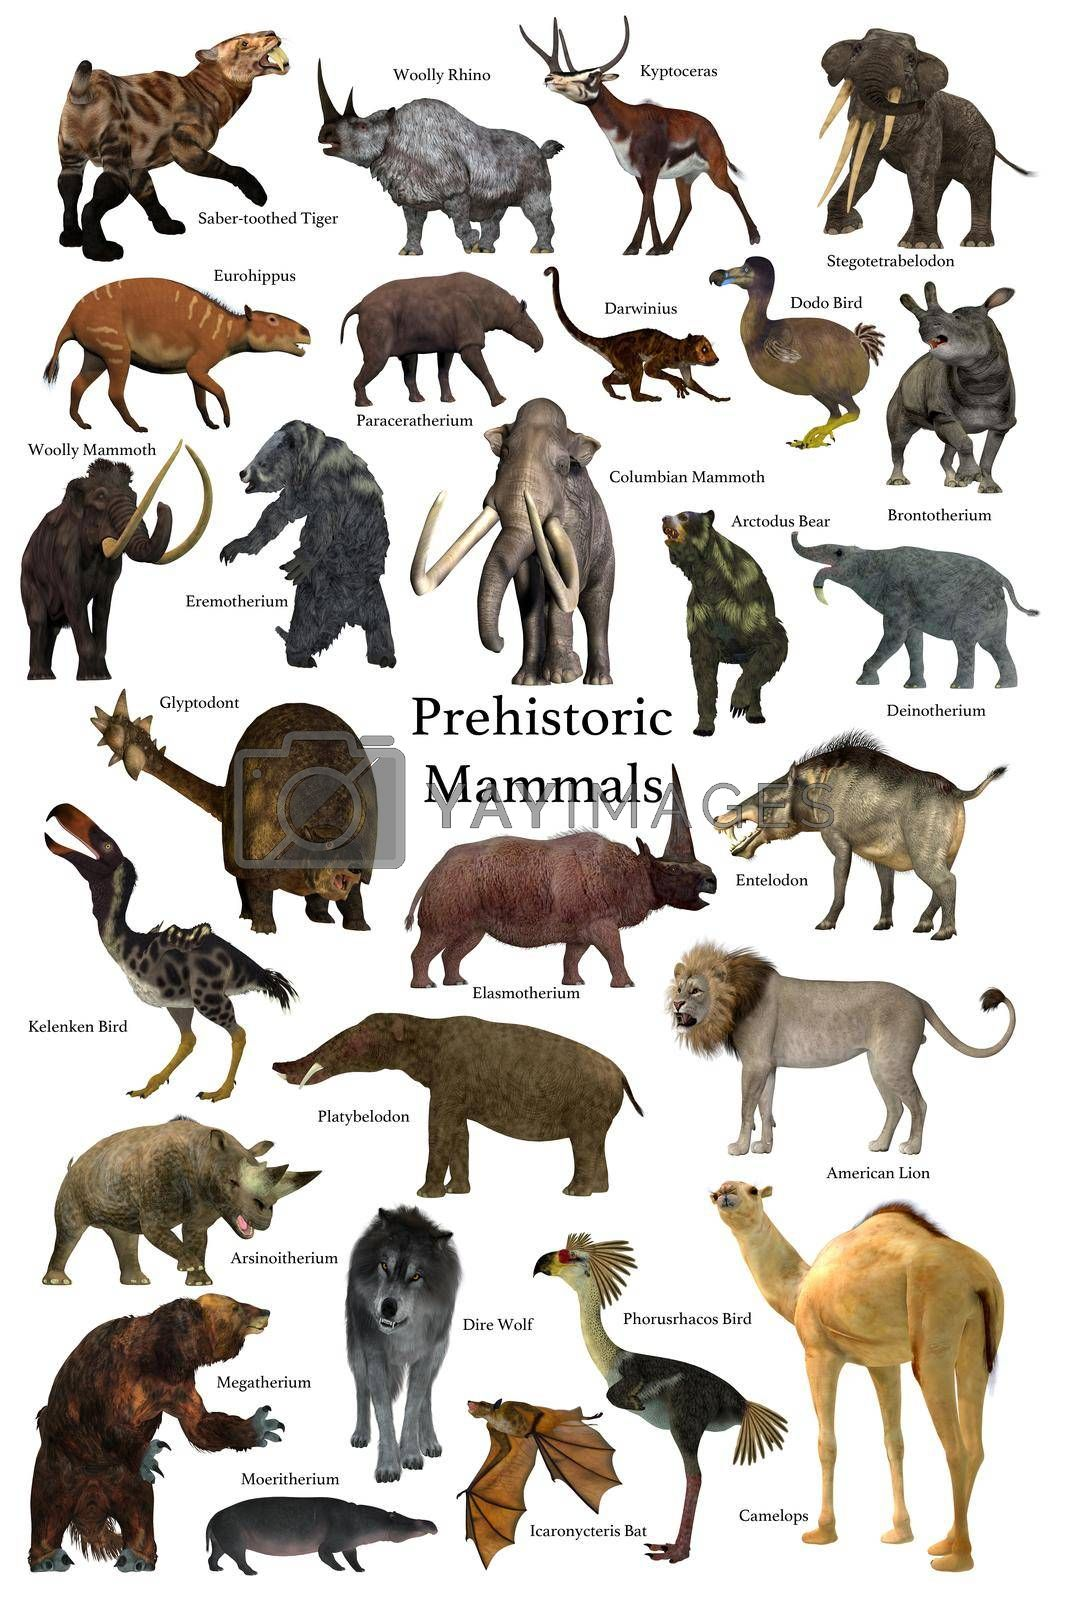 A collection of some of the better known mammals that lived during the Cenozoic Era.